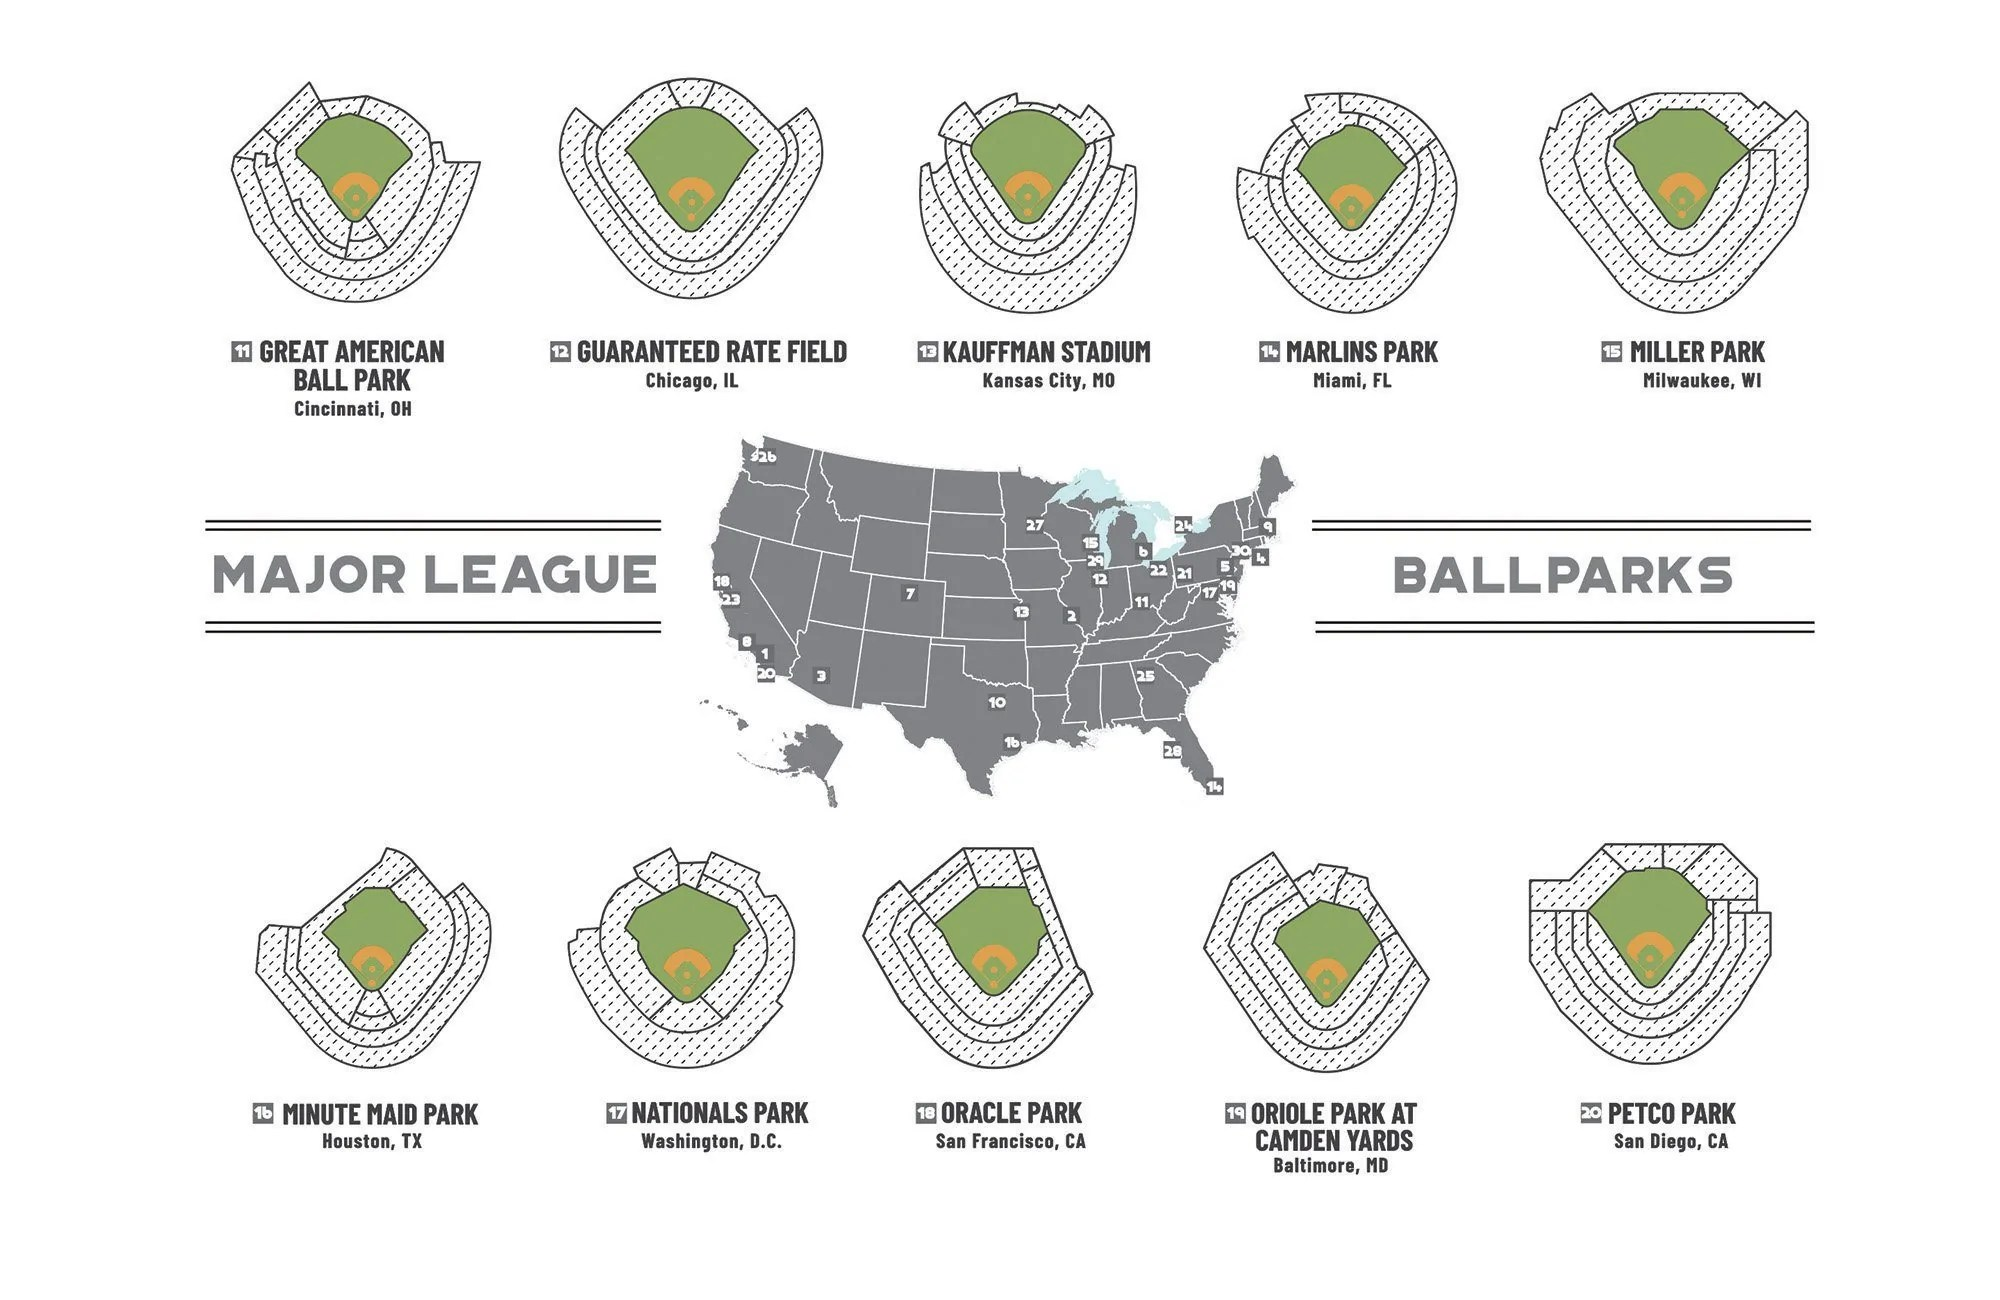 baseball park scratch off map major league 30 12x18 inches poster includes scratcher